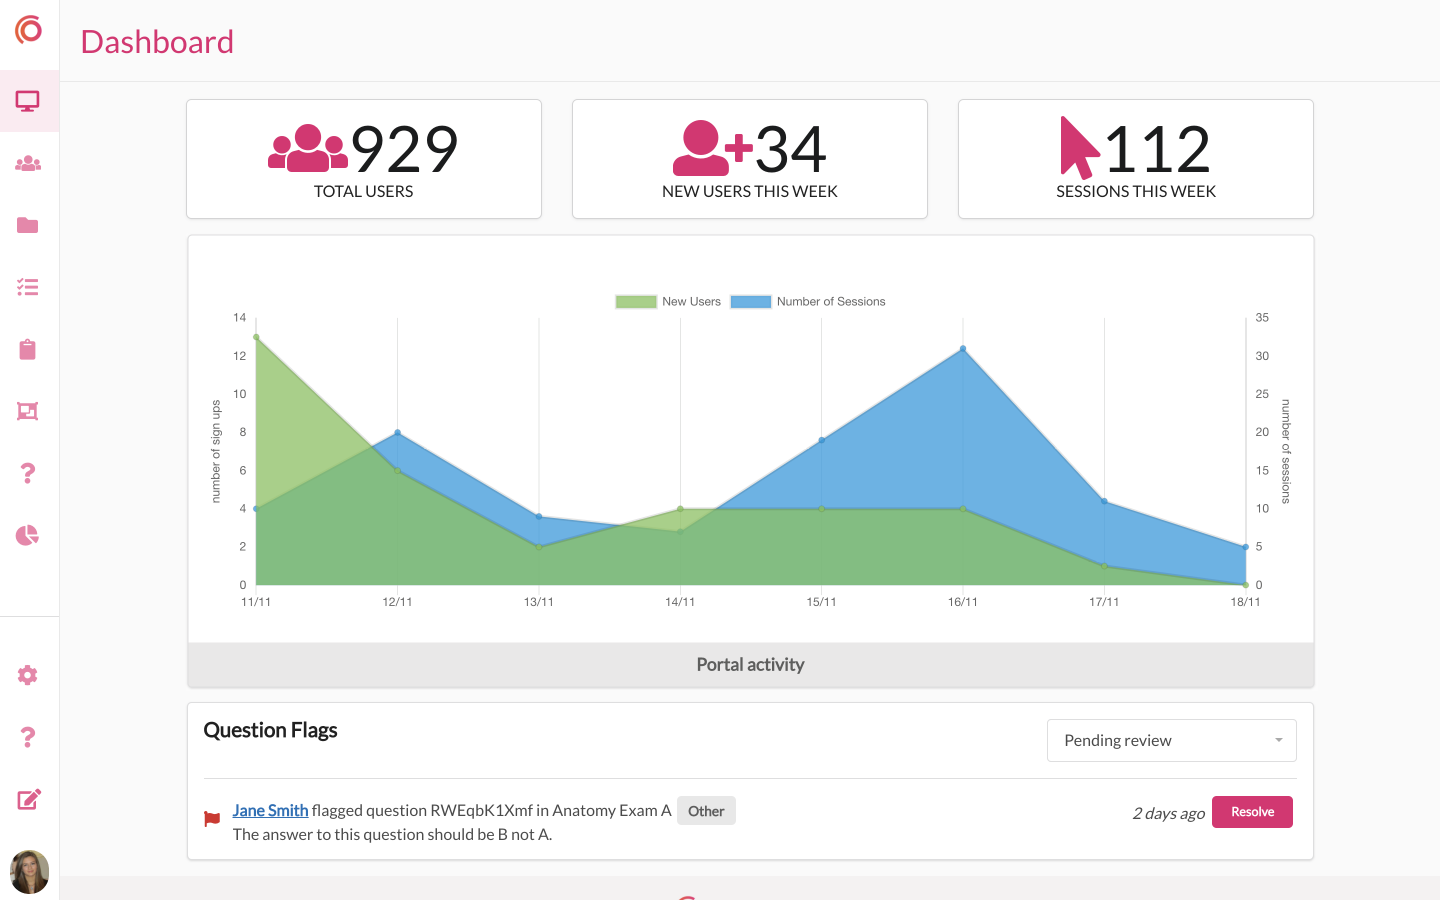 As an admin, your dashboard allows you to see various user stats and question flags made by your learners.